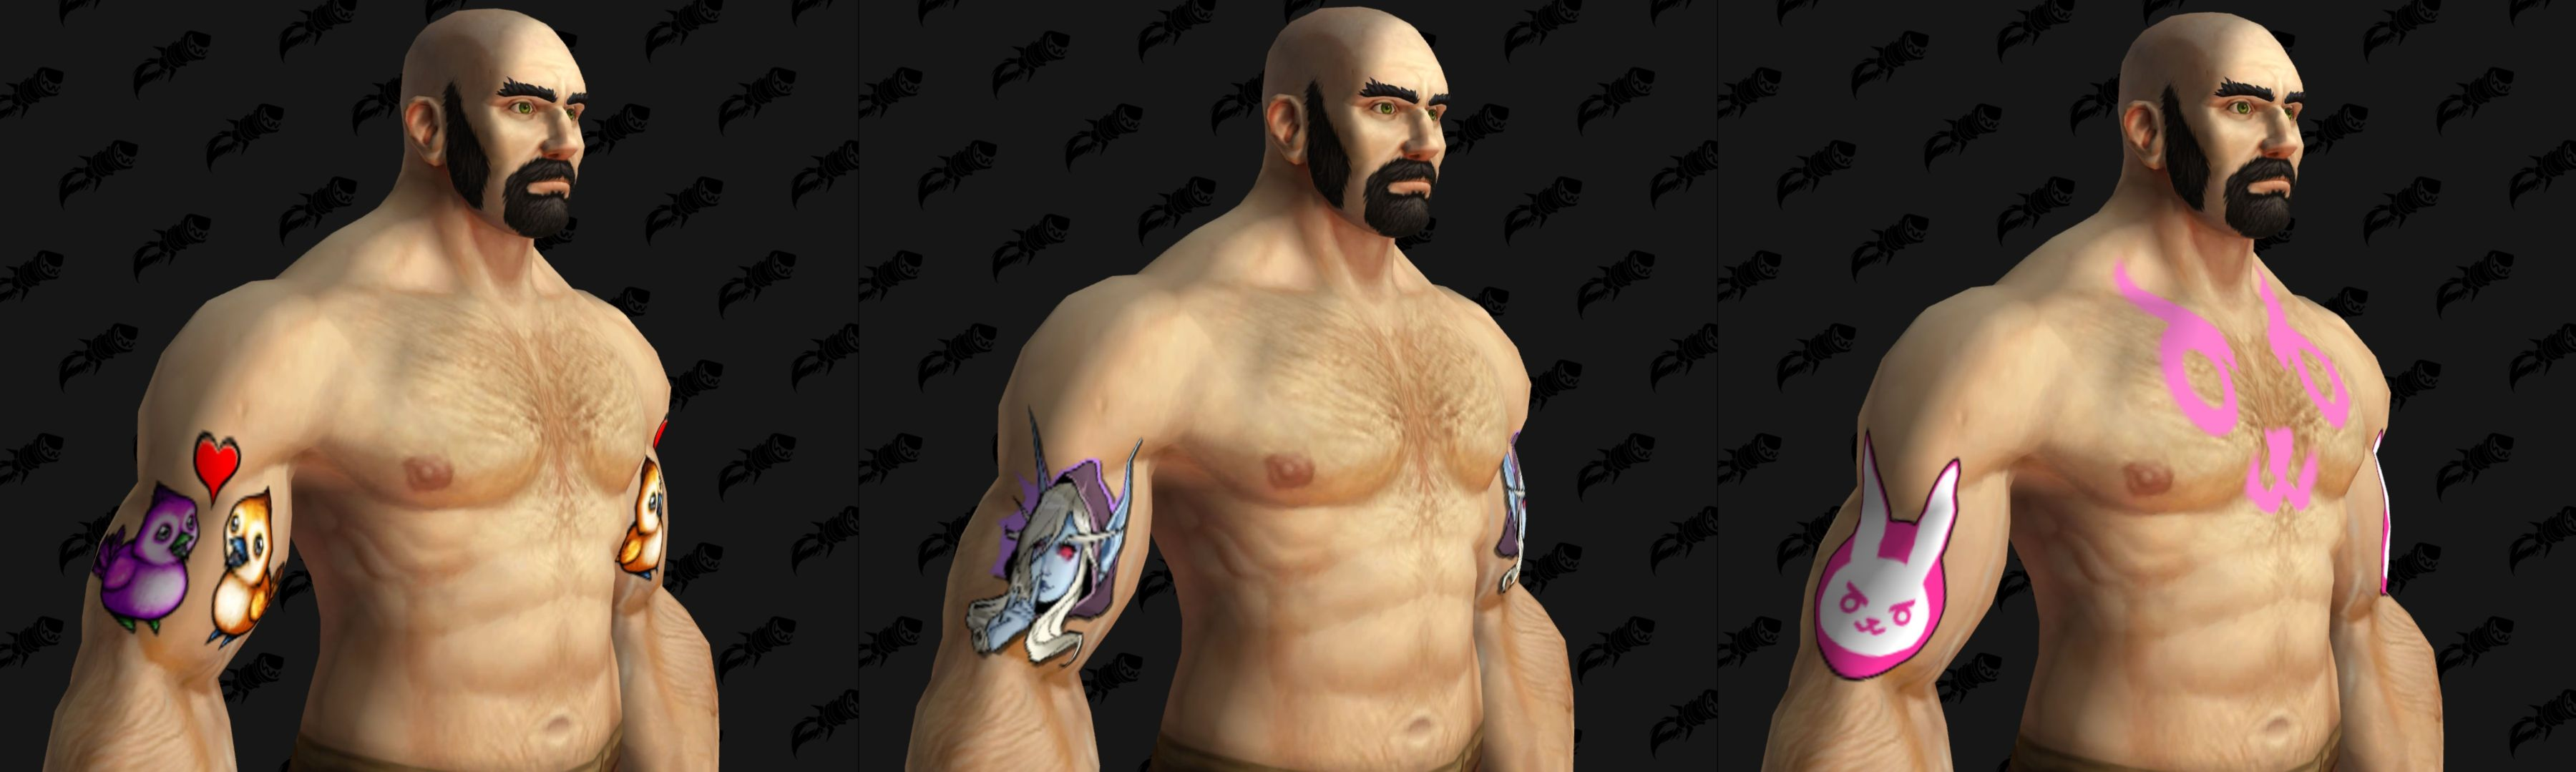 WoW Wowhead tattoos april fools 2